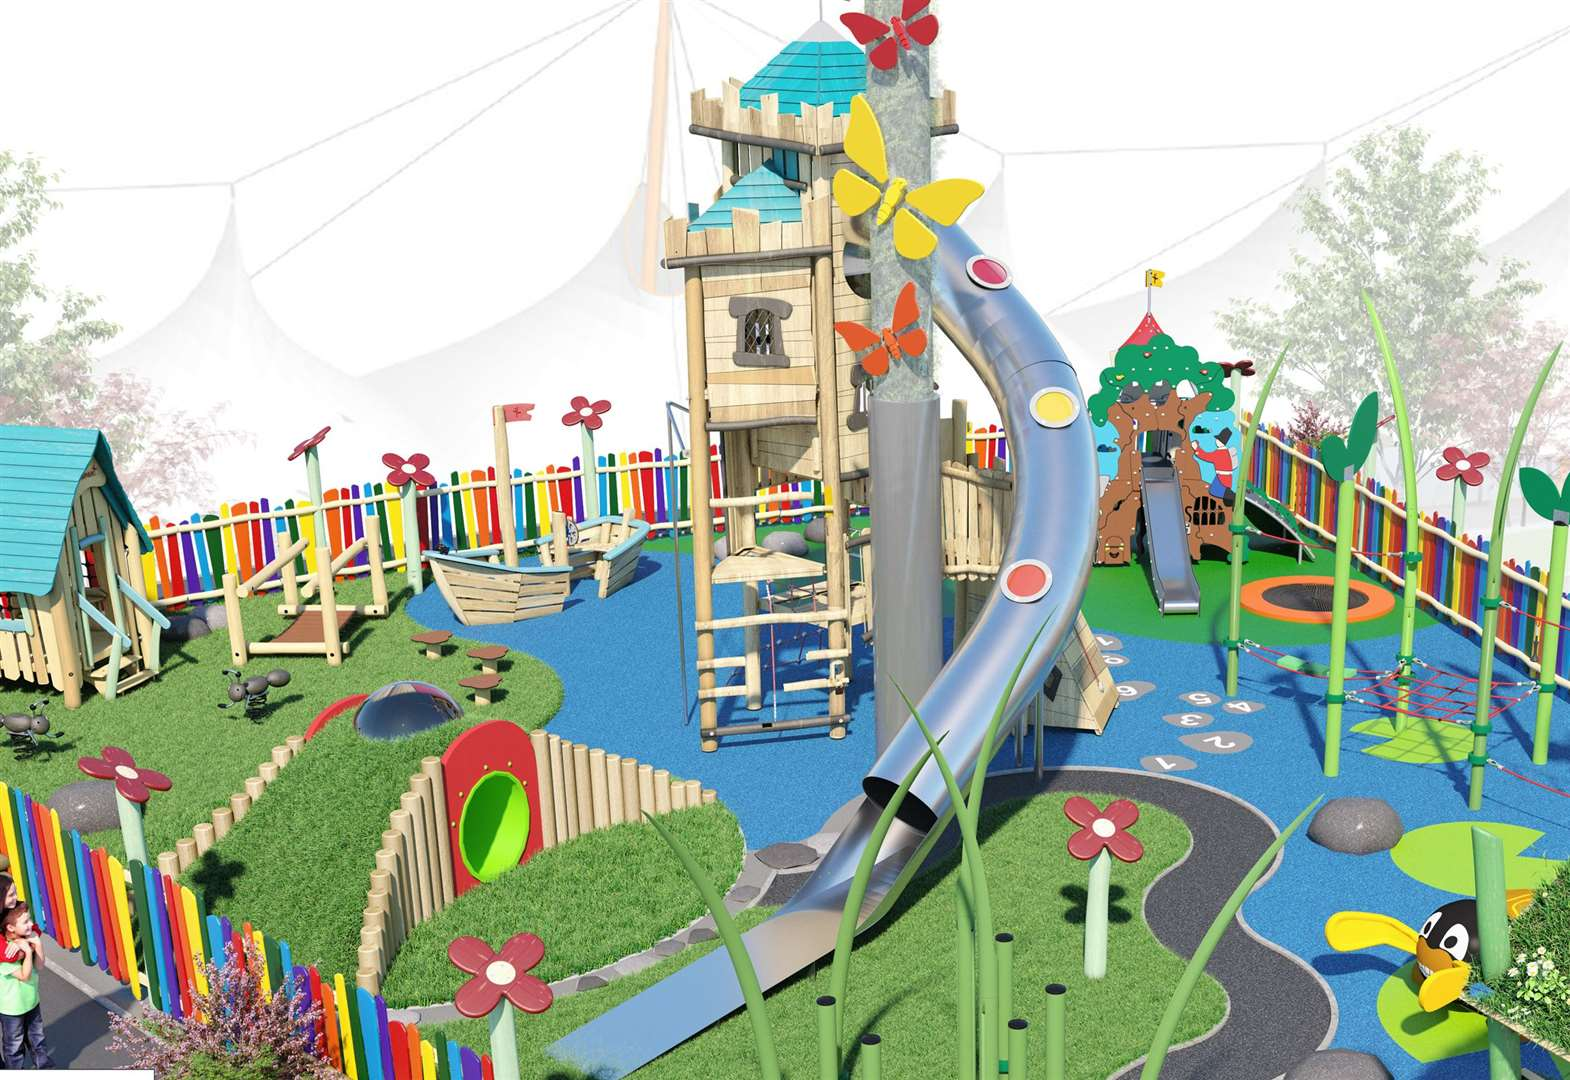 New children's play area set to open